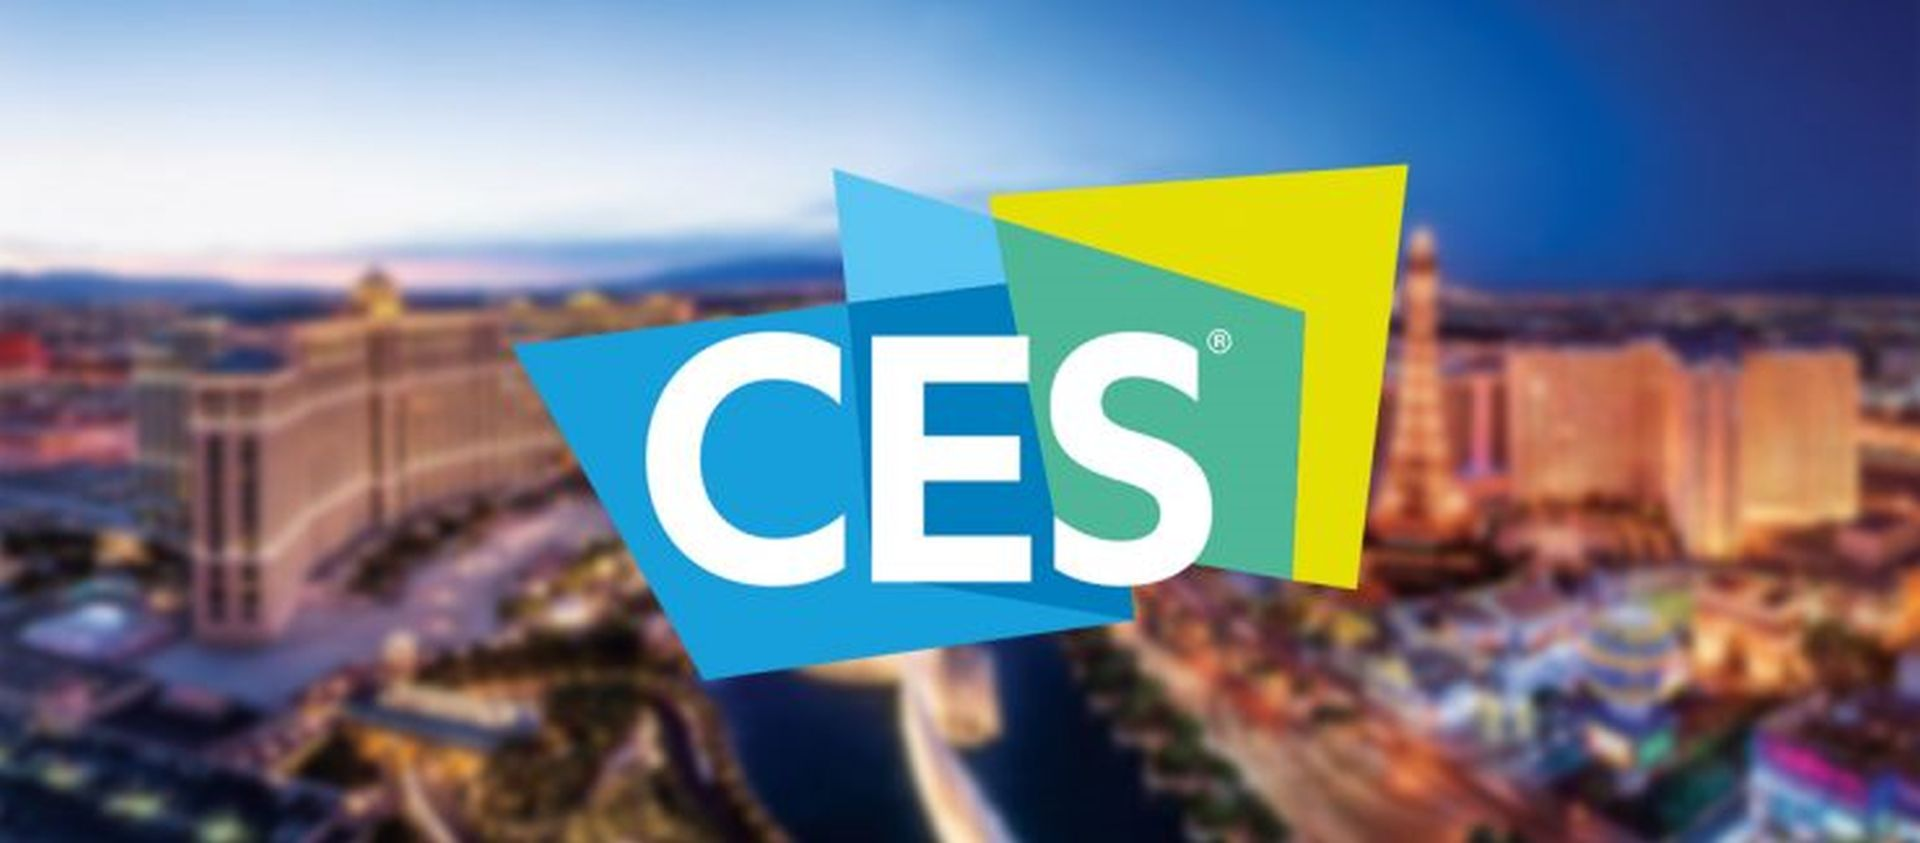 CES Las Vegas 2018: The Exhibitors of the Holland Startup Pavilion